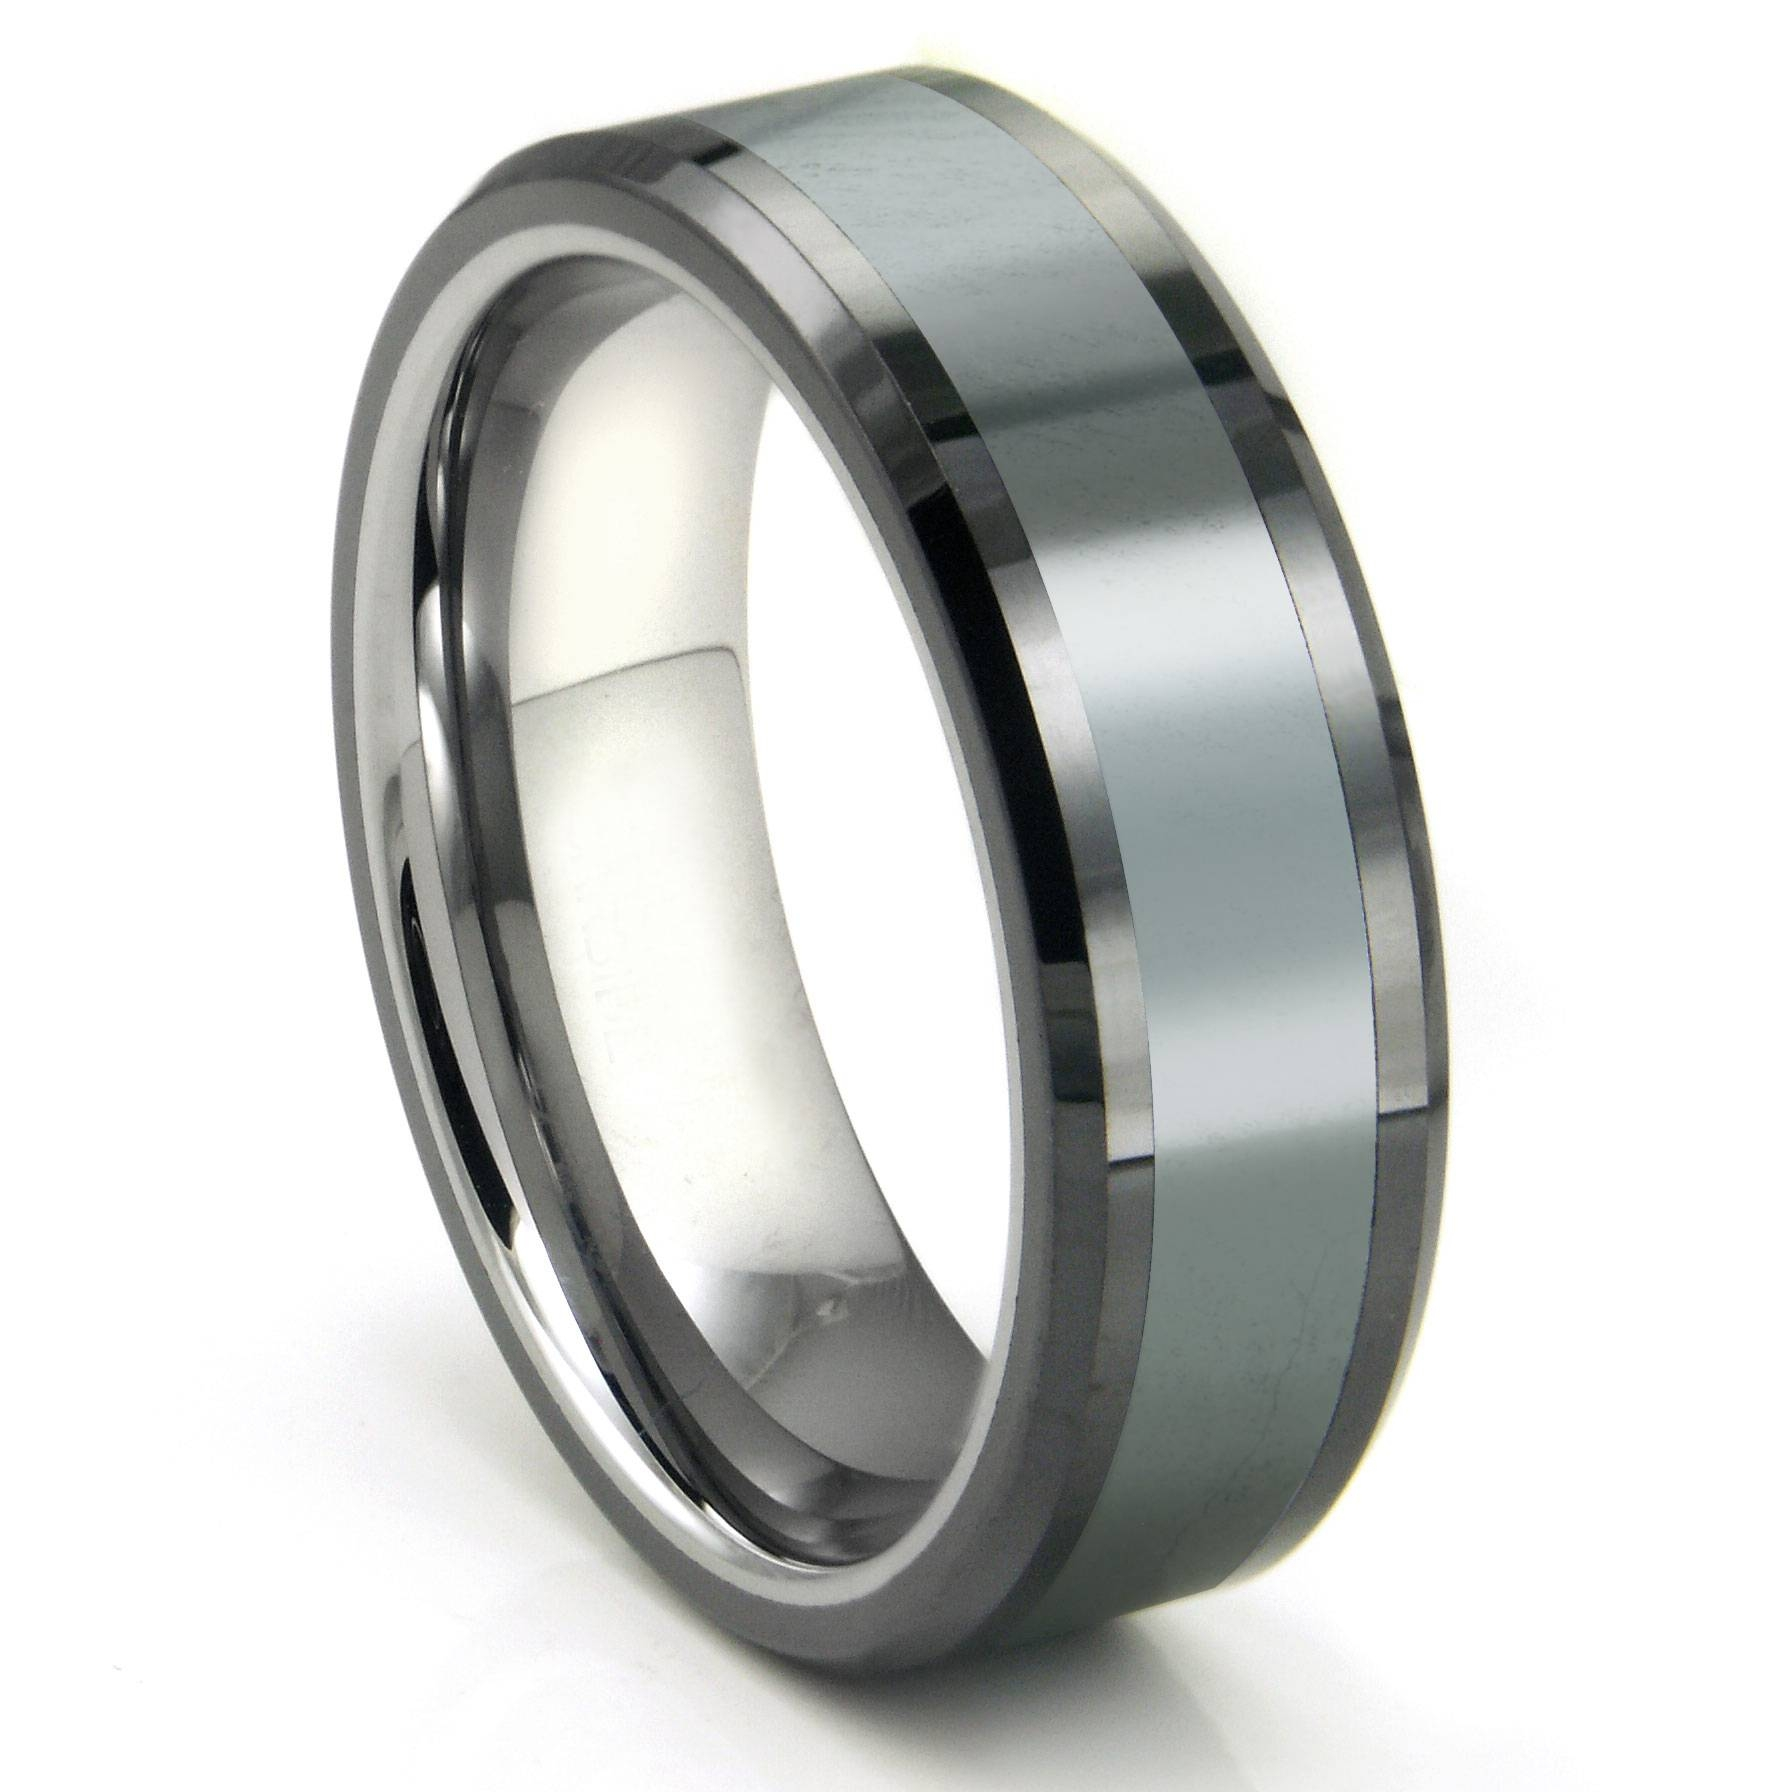 Tungsten Carbide Grey Meteorite Inlay Wedding Band Ring Pertaining To Black Metal Wedding Bands (View 12 of 15)